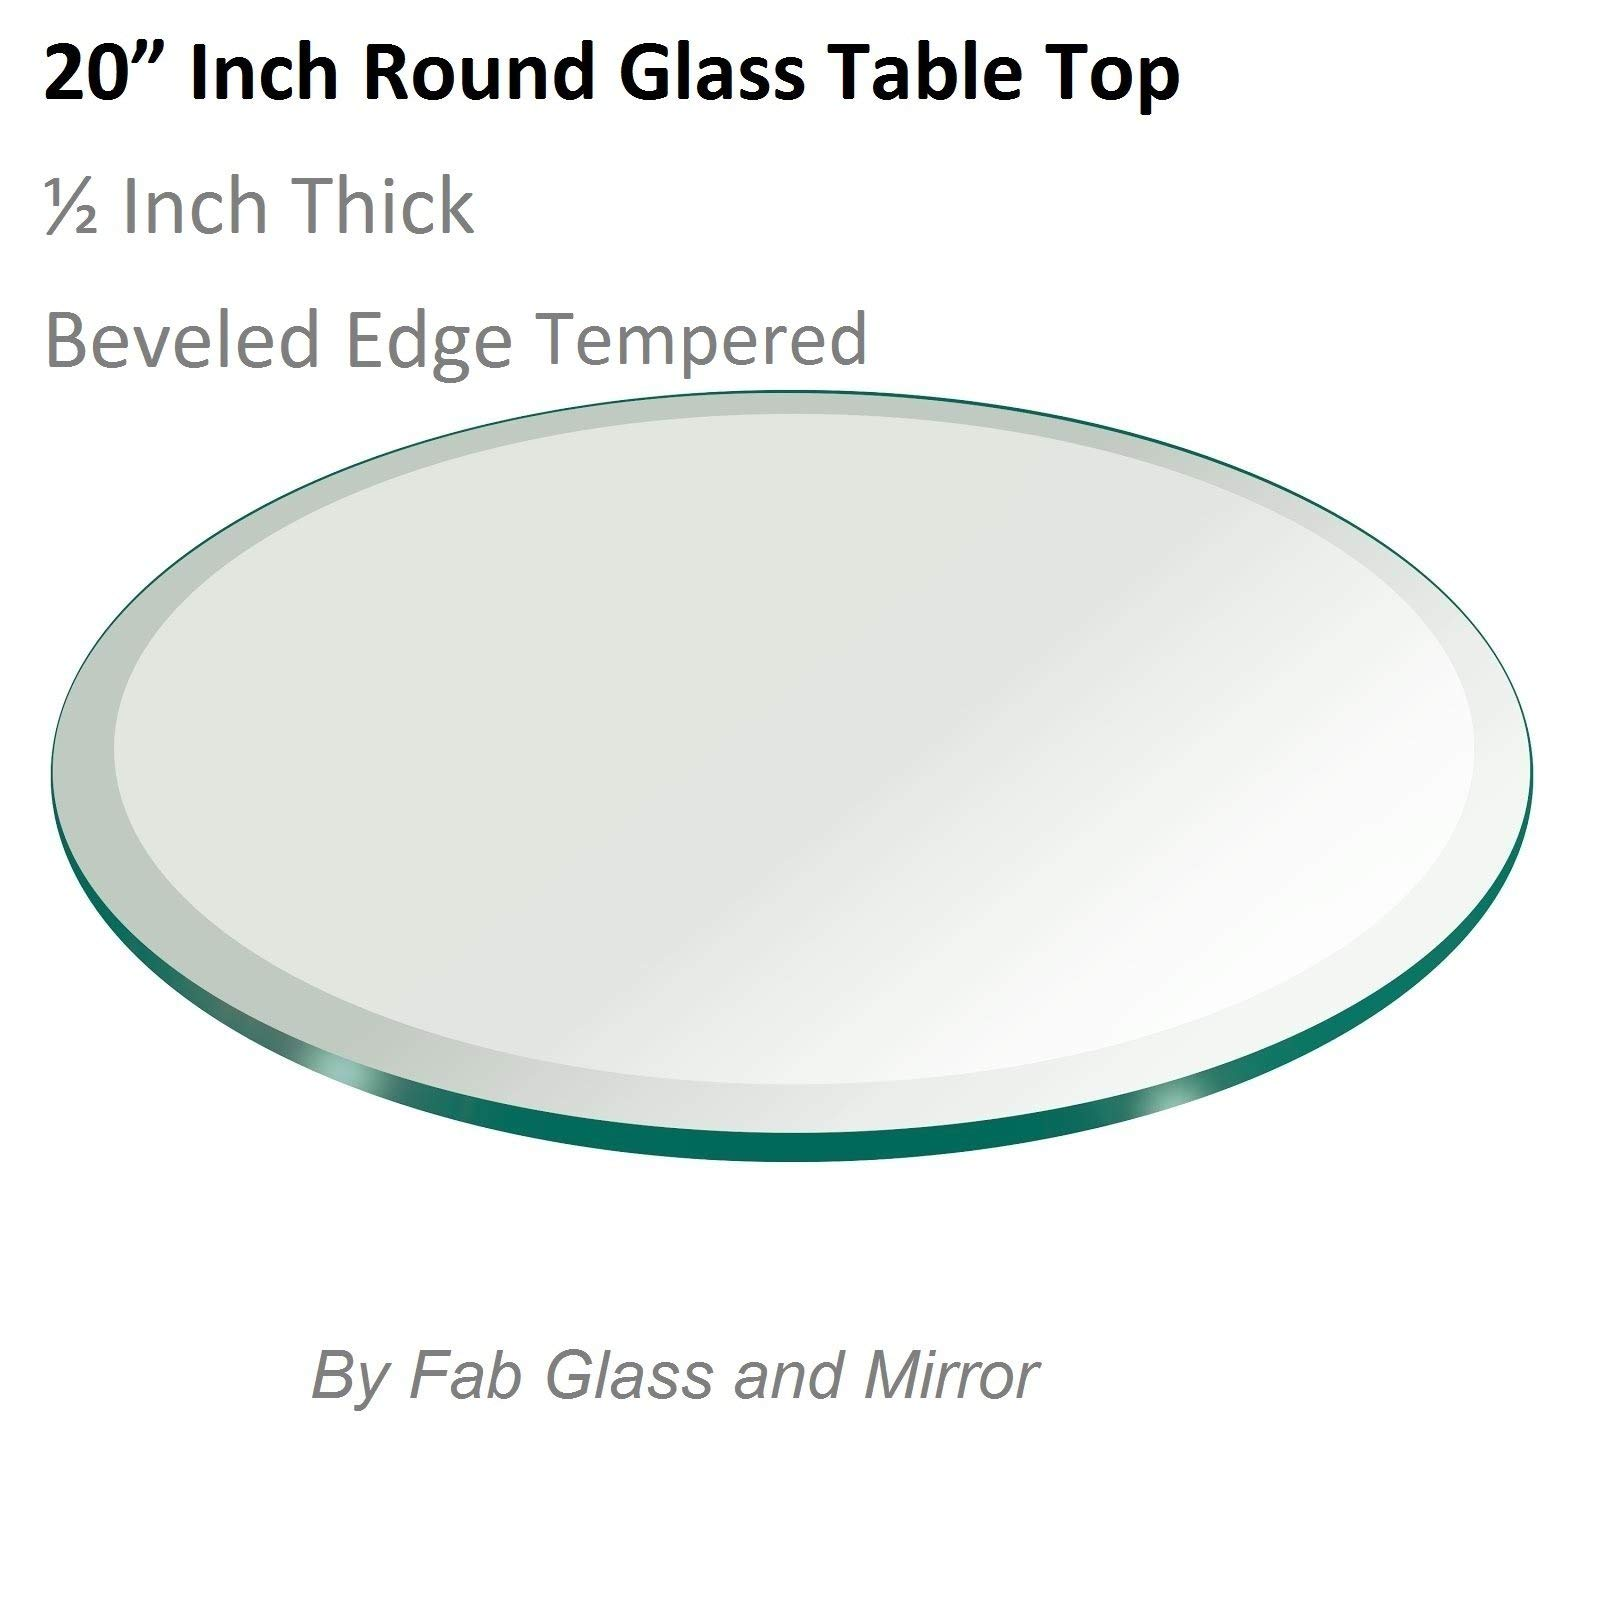 20'' Inch Round Glass Table Top 1/2'' Thick Tempered Beveled Edge by Fab Glass and Mirror (Renewed) by Fab Glass and Mirror